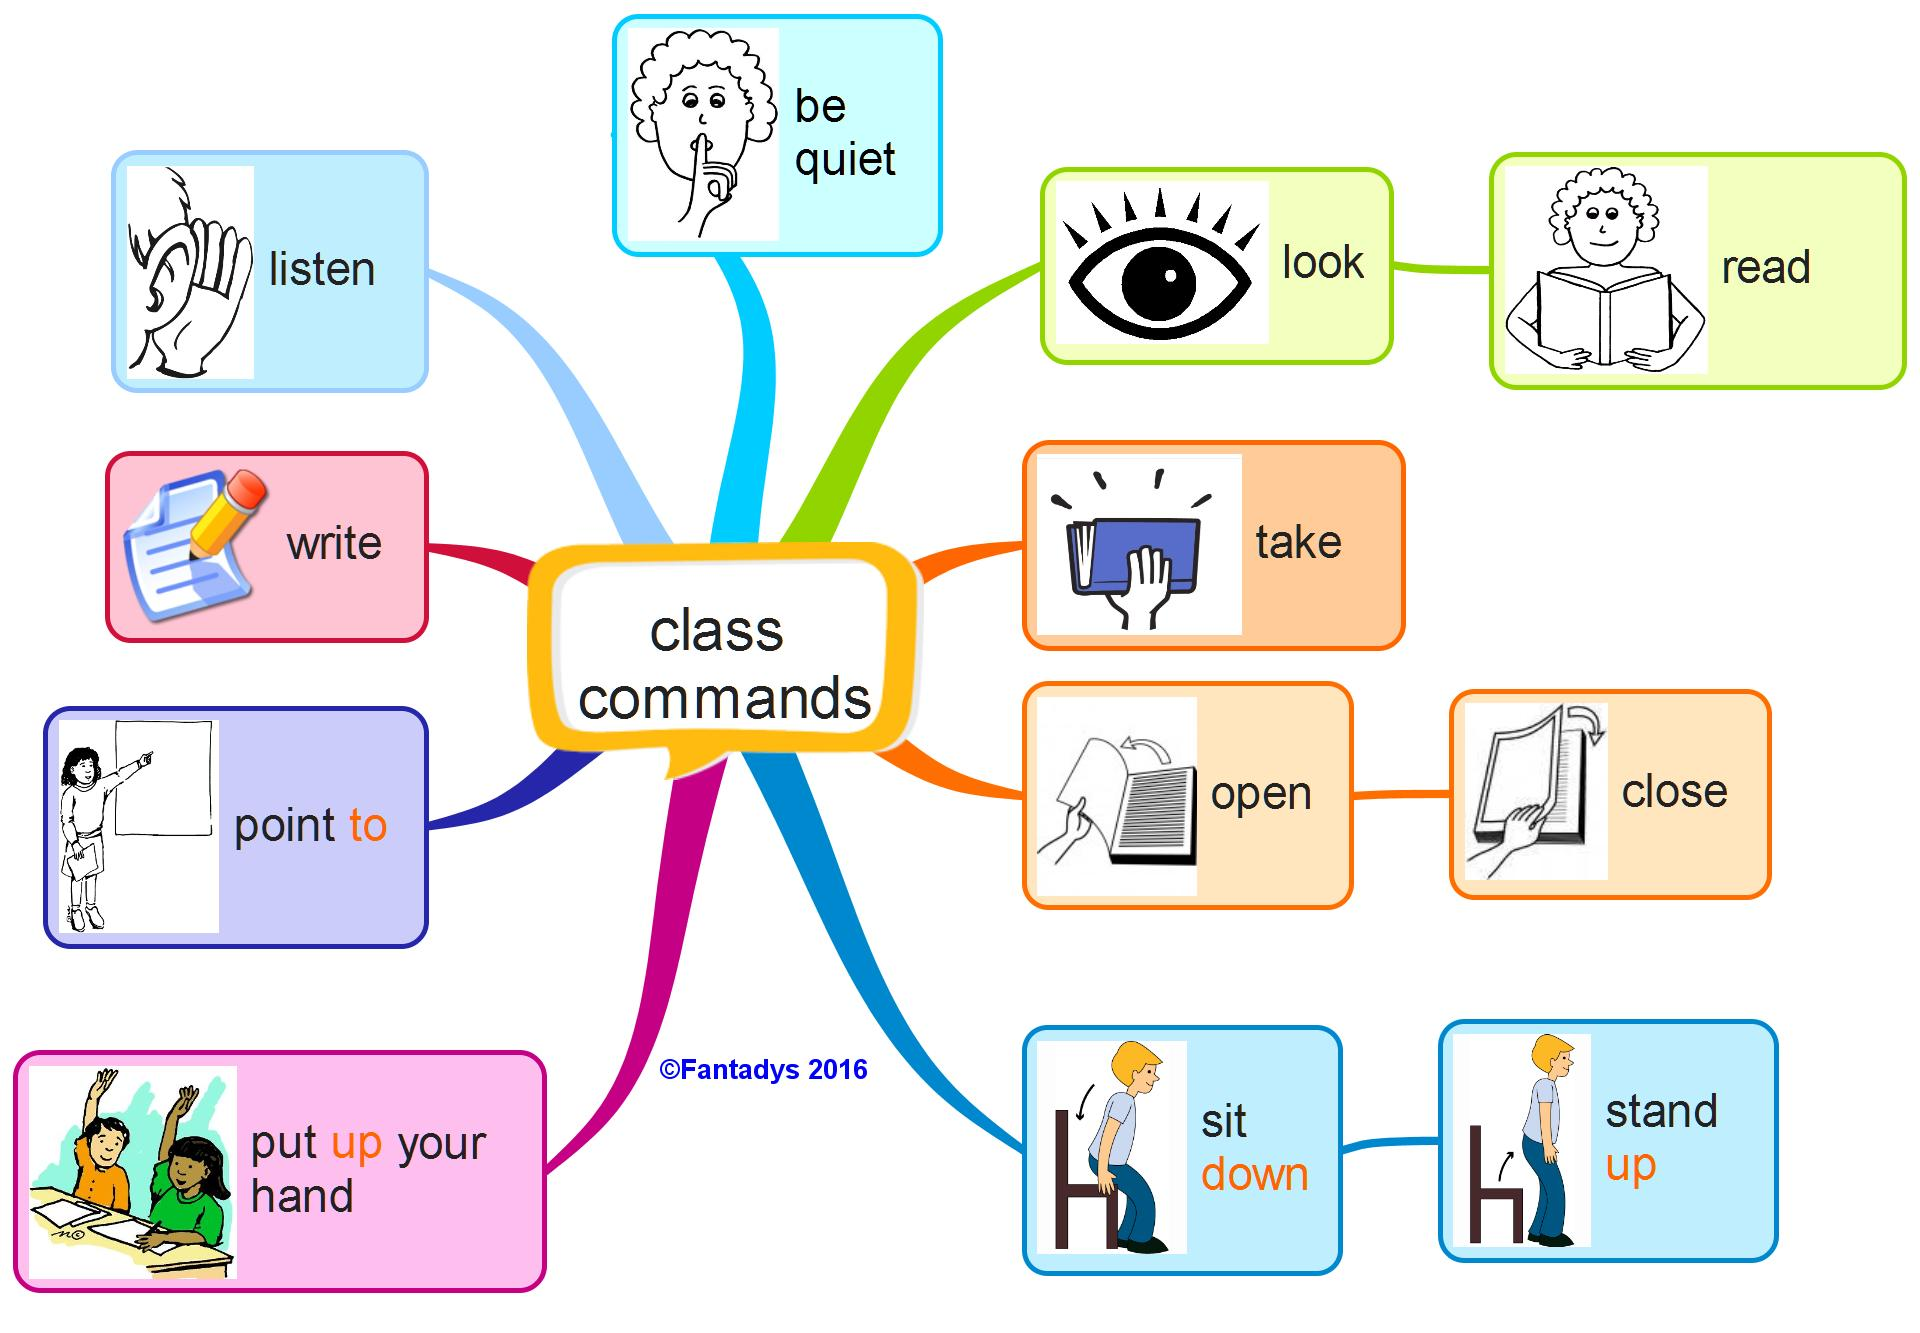 https://fantadys.files.wordpress.com/2016/04/class-commands-f.jpeg